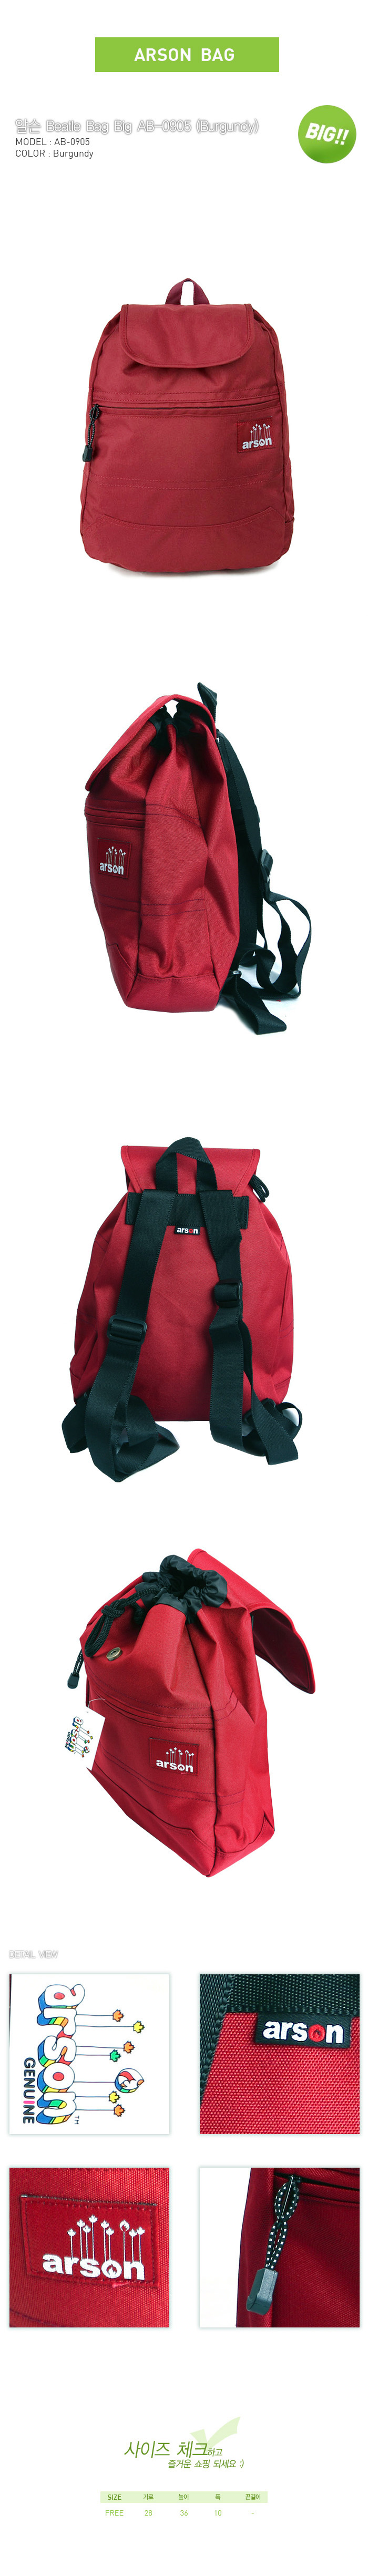 [ ARSON ] AB-0905 (Burgundy)/Backpack School Bag